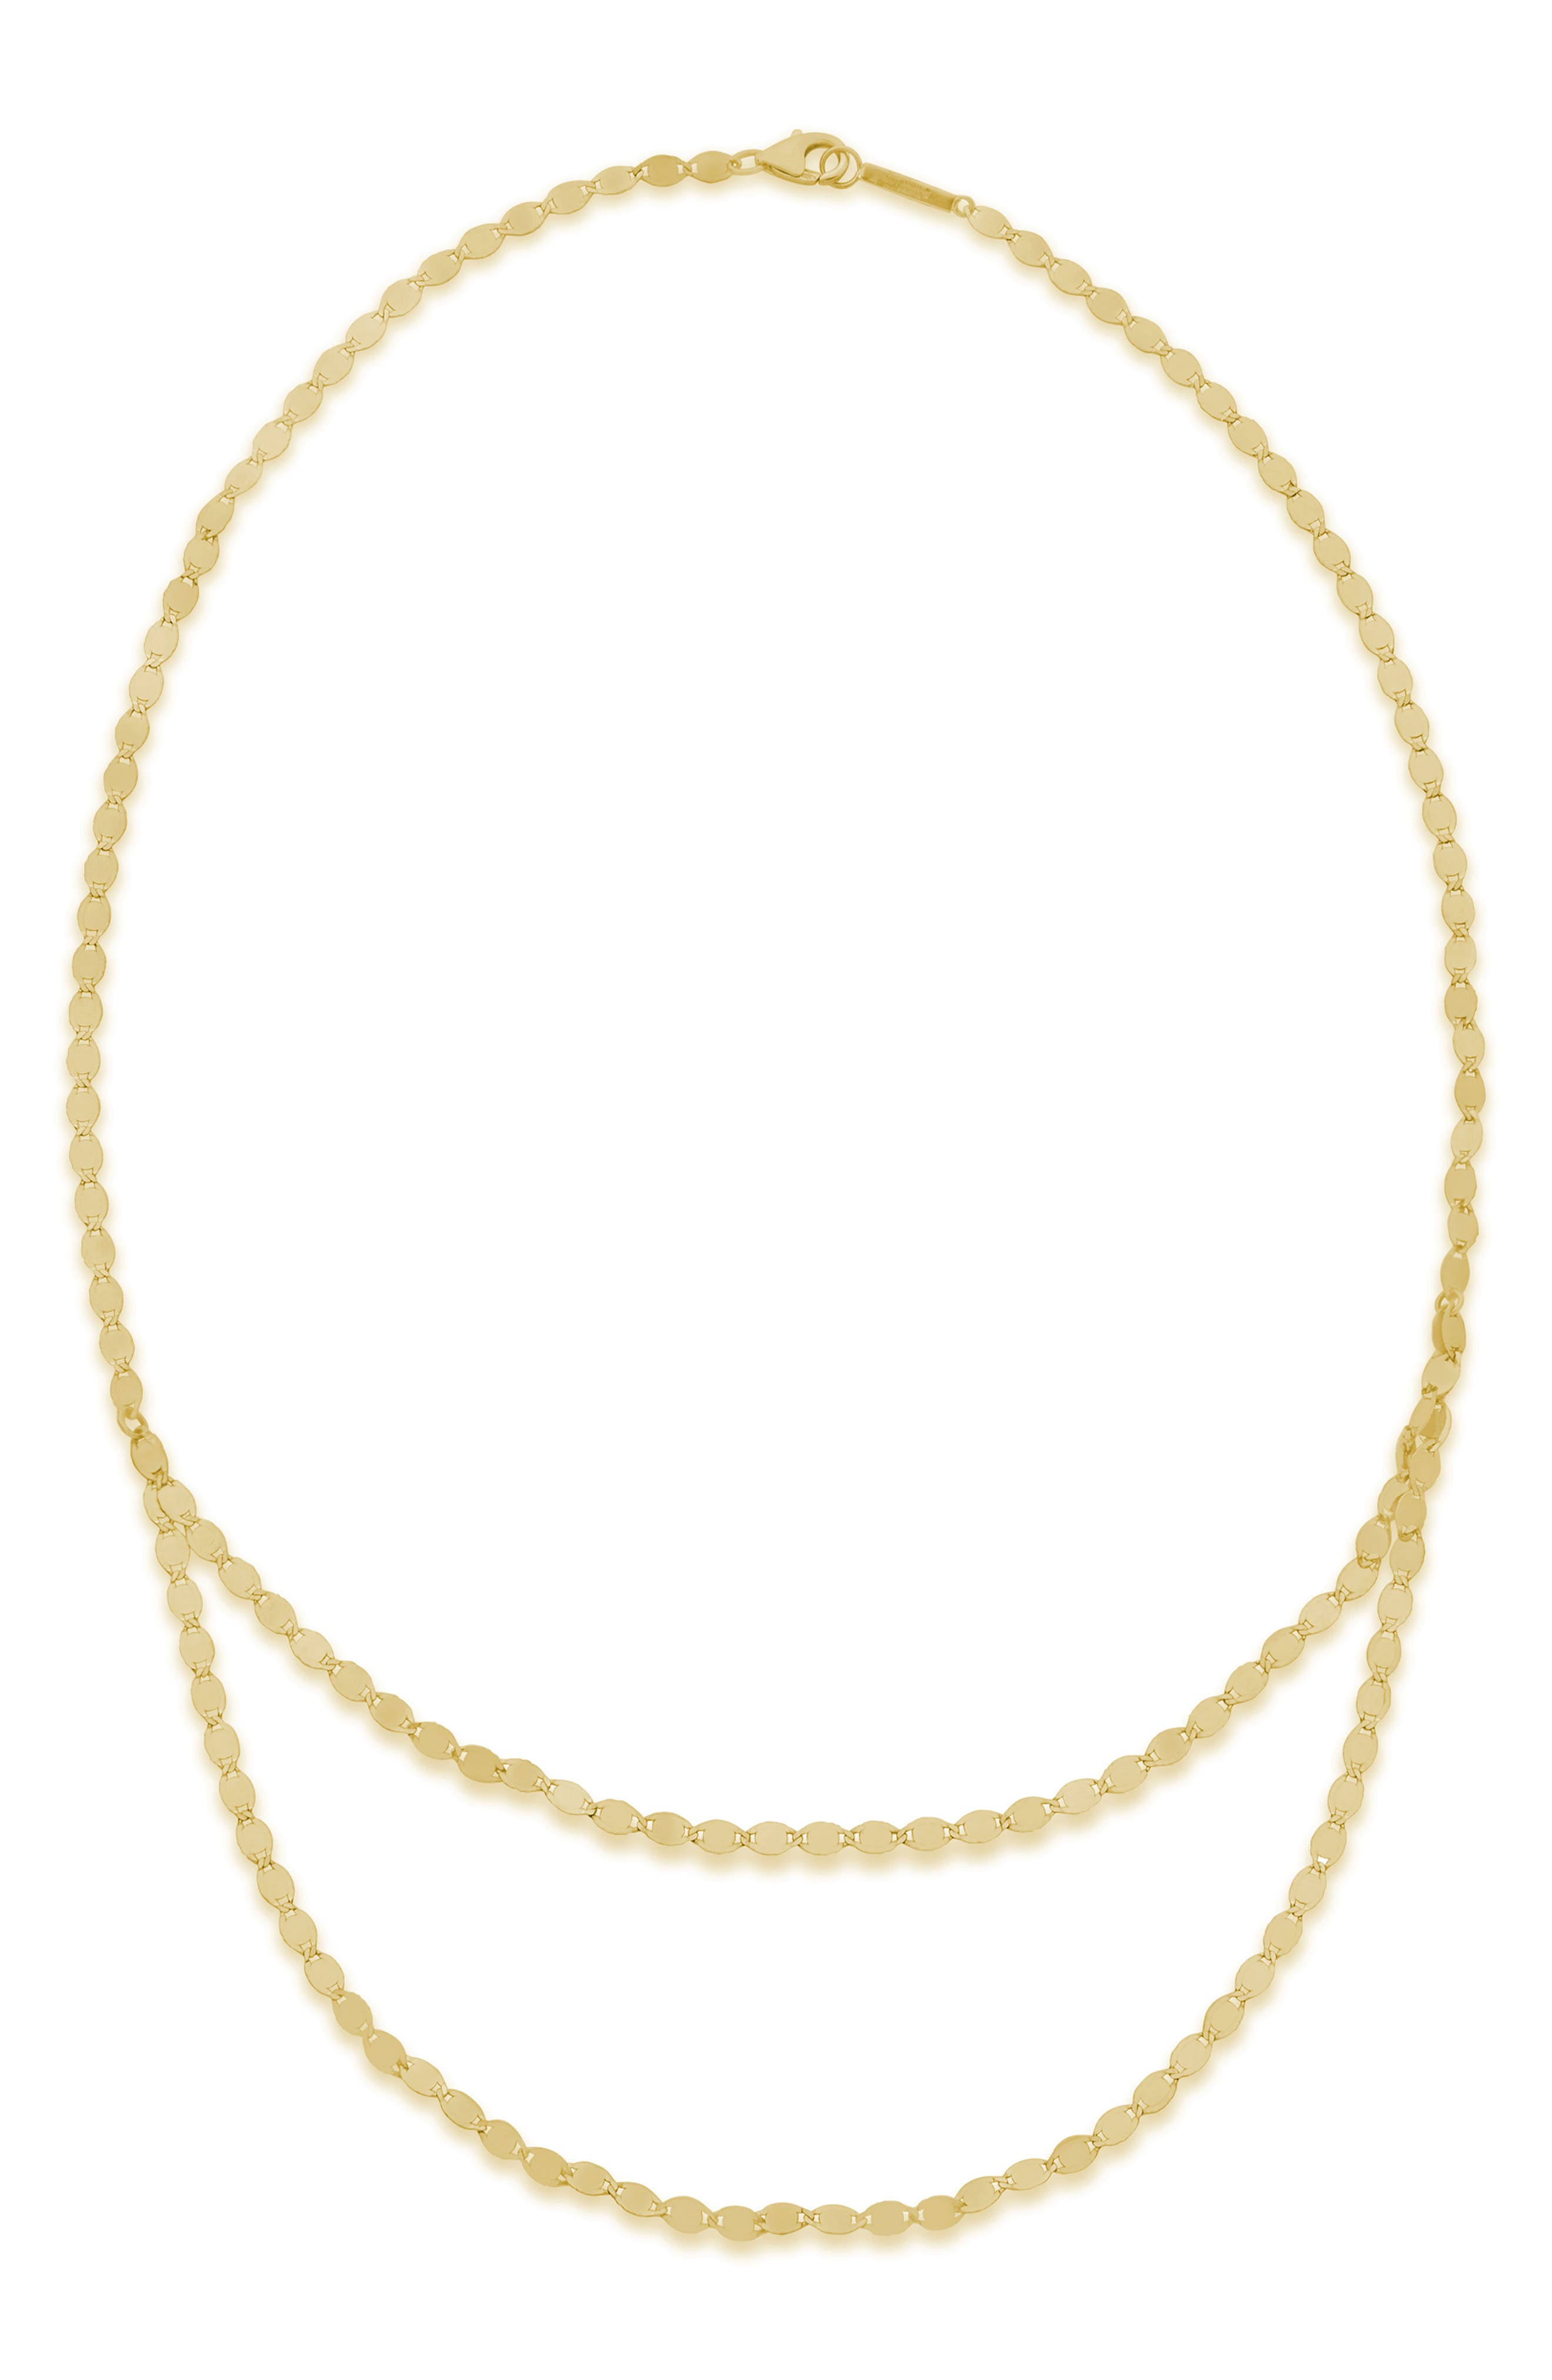 Chain Double Layer Necklace,                             Main thumbnail 1, color,                             YELLOW GOLD